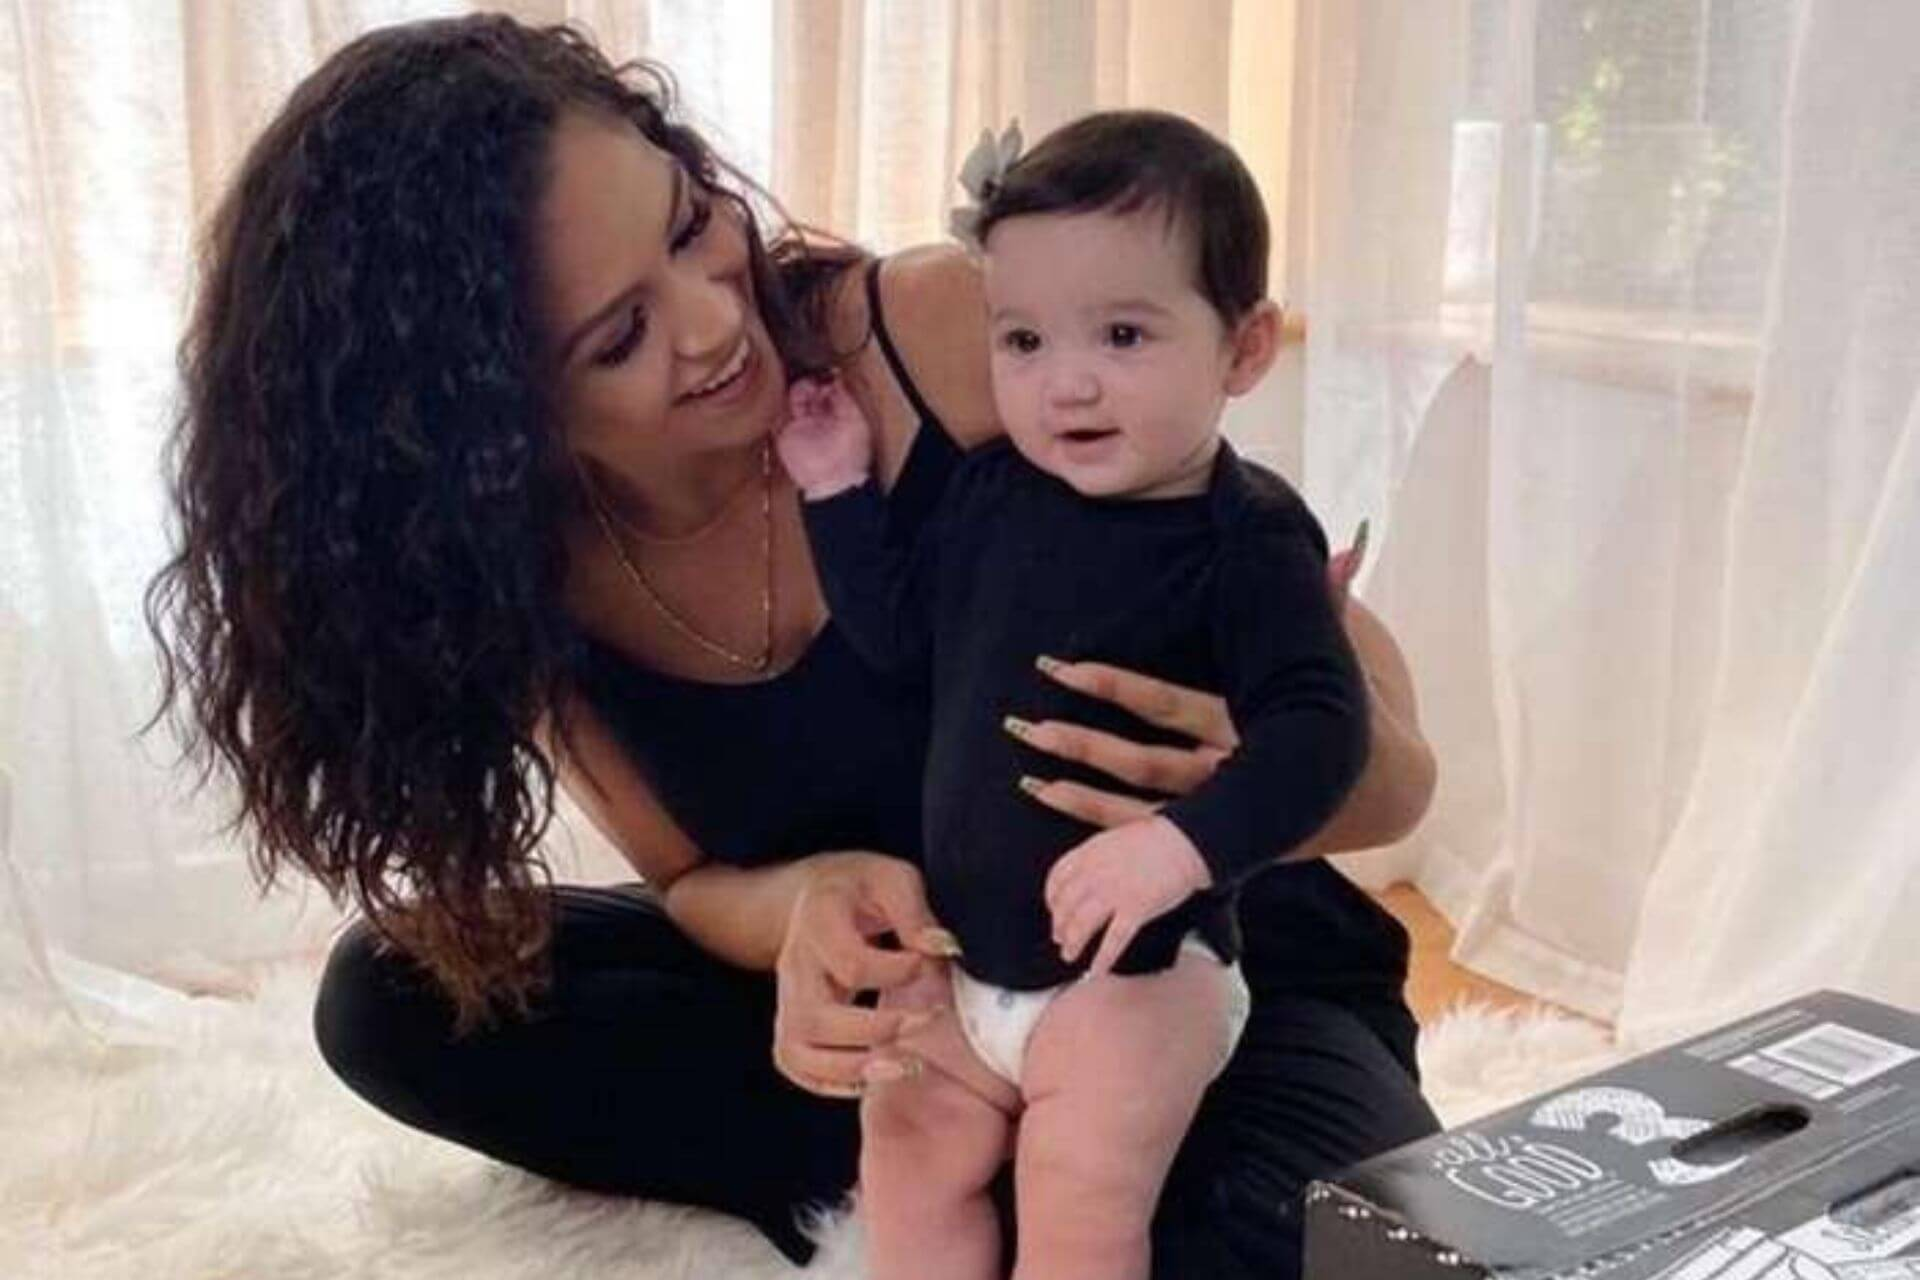 'I found out that I had something called postpartum thyroiditis' - Cassie shares her depressing postpartum weight loss journey